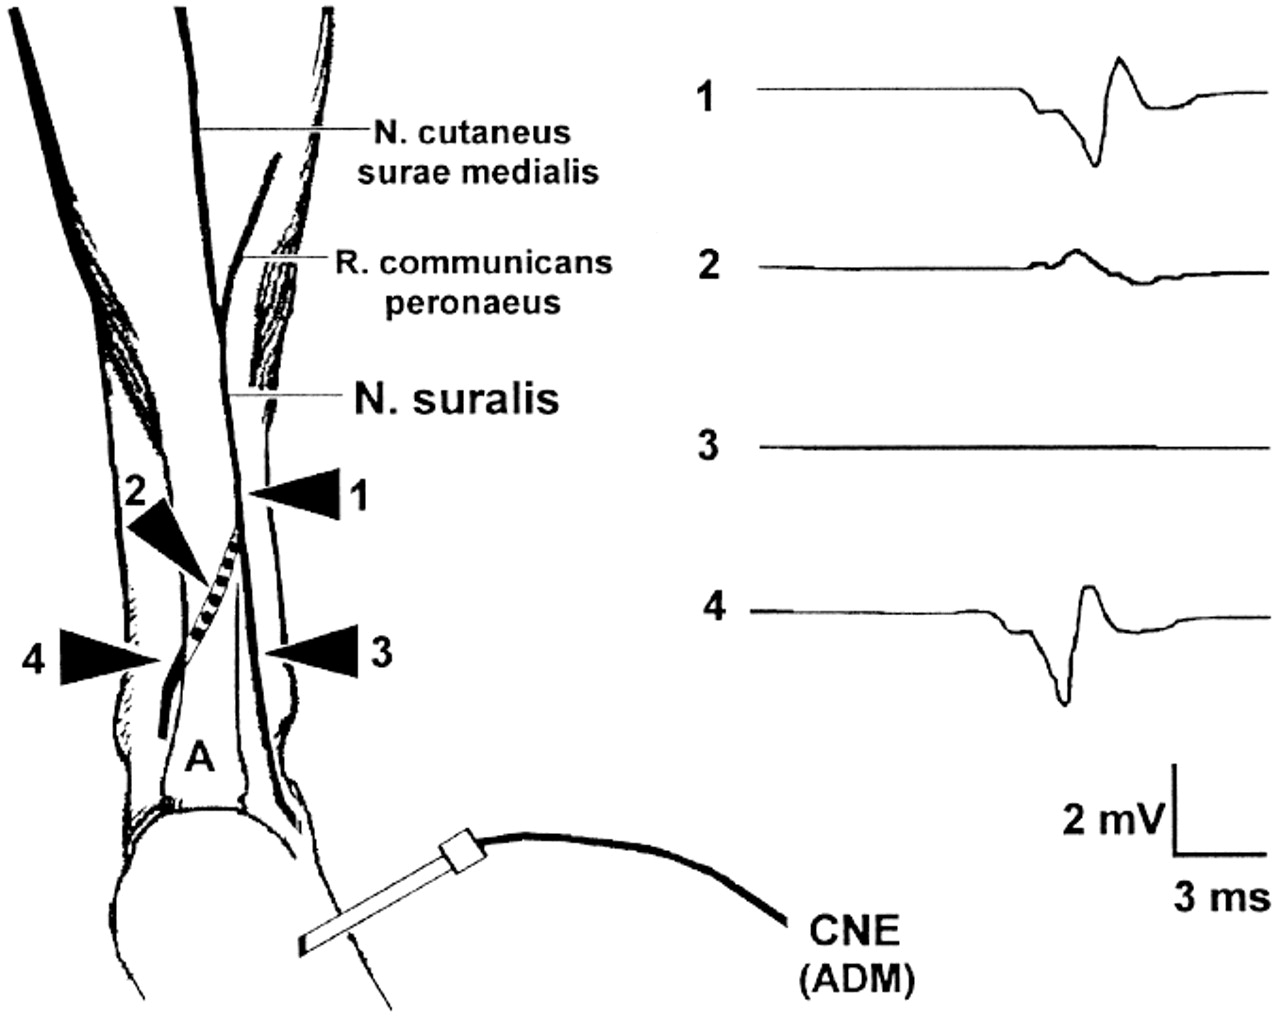 Motor fibers in the sural nerve of humans | Neurology